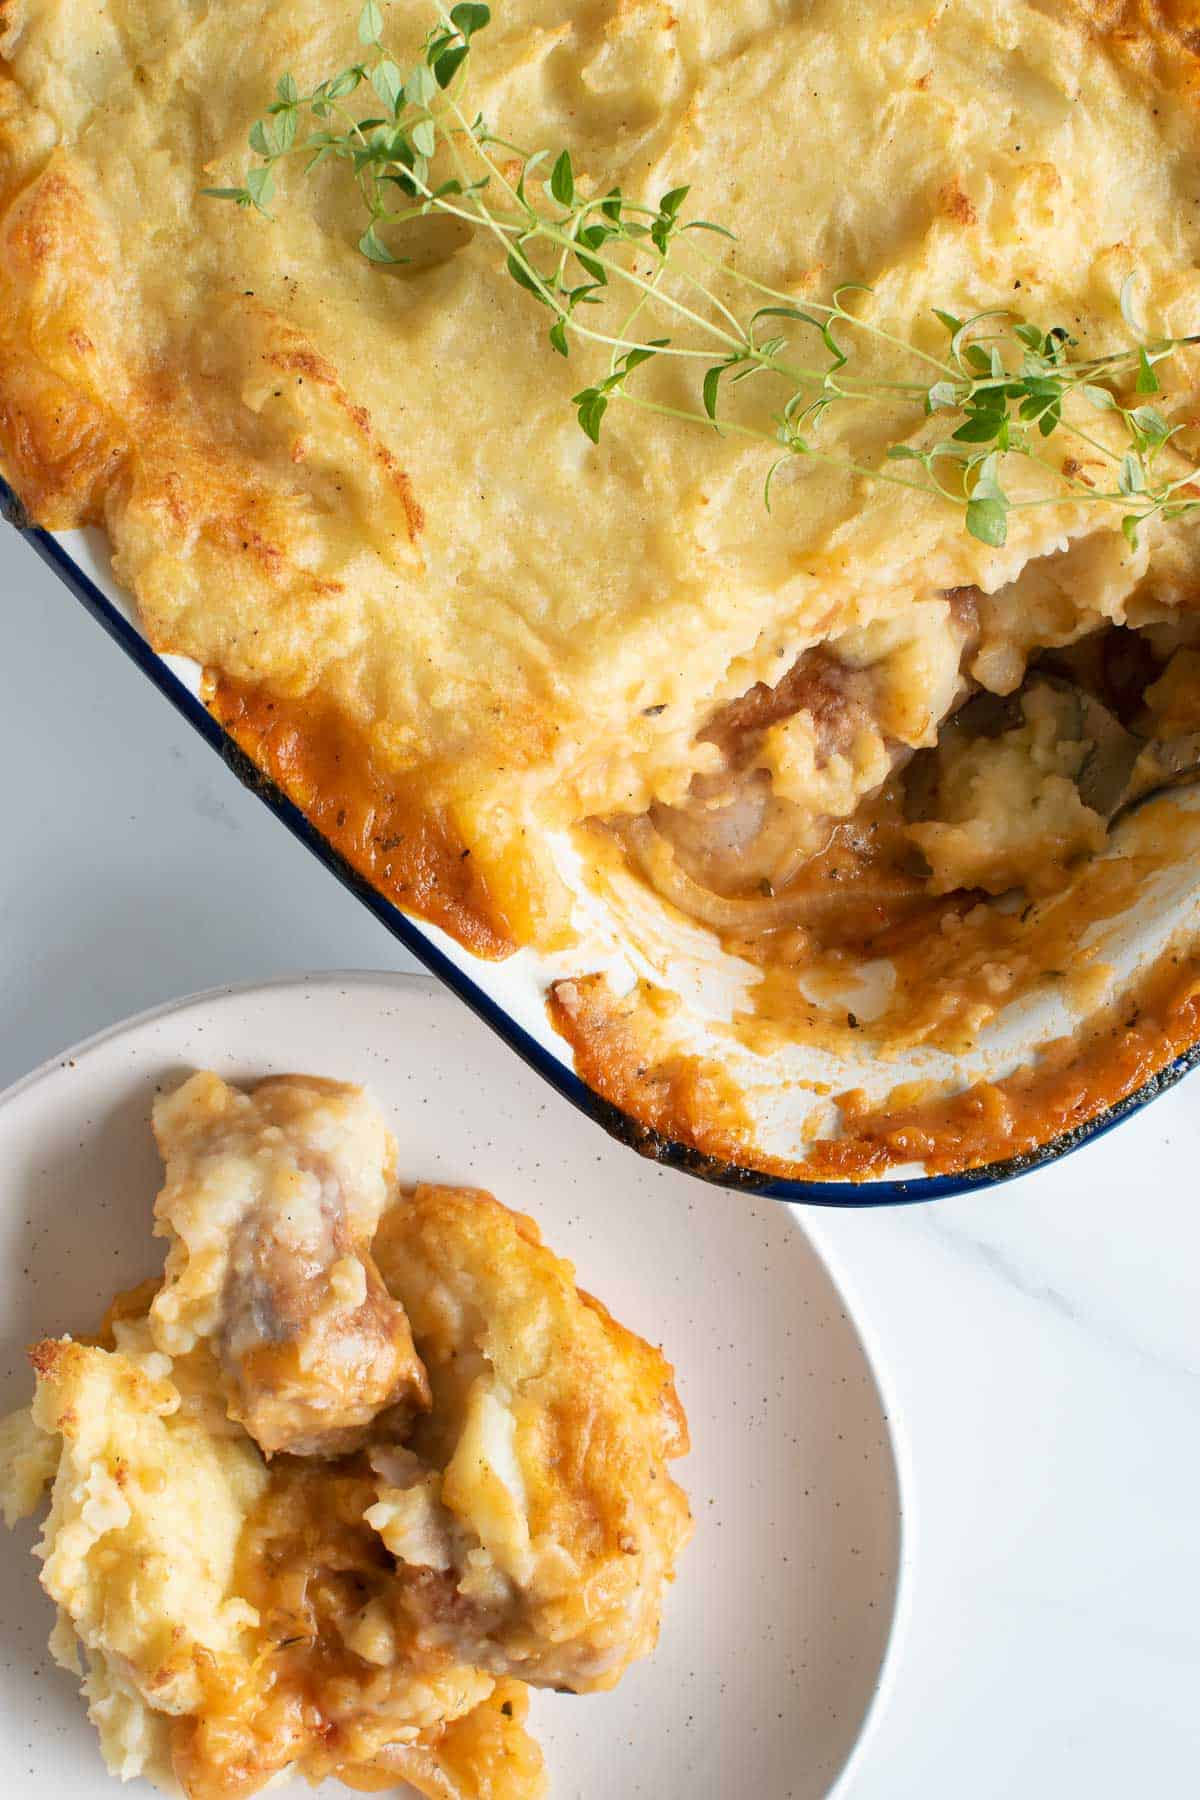 A pie dish filled with sausage and mashed potato pie, with a serving plated up on the side.